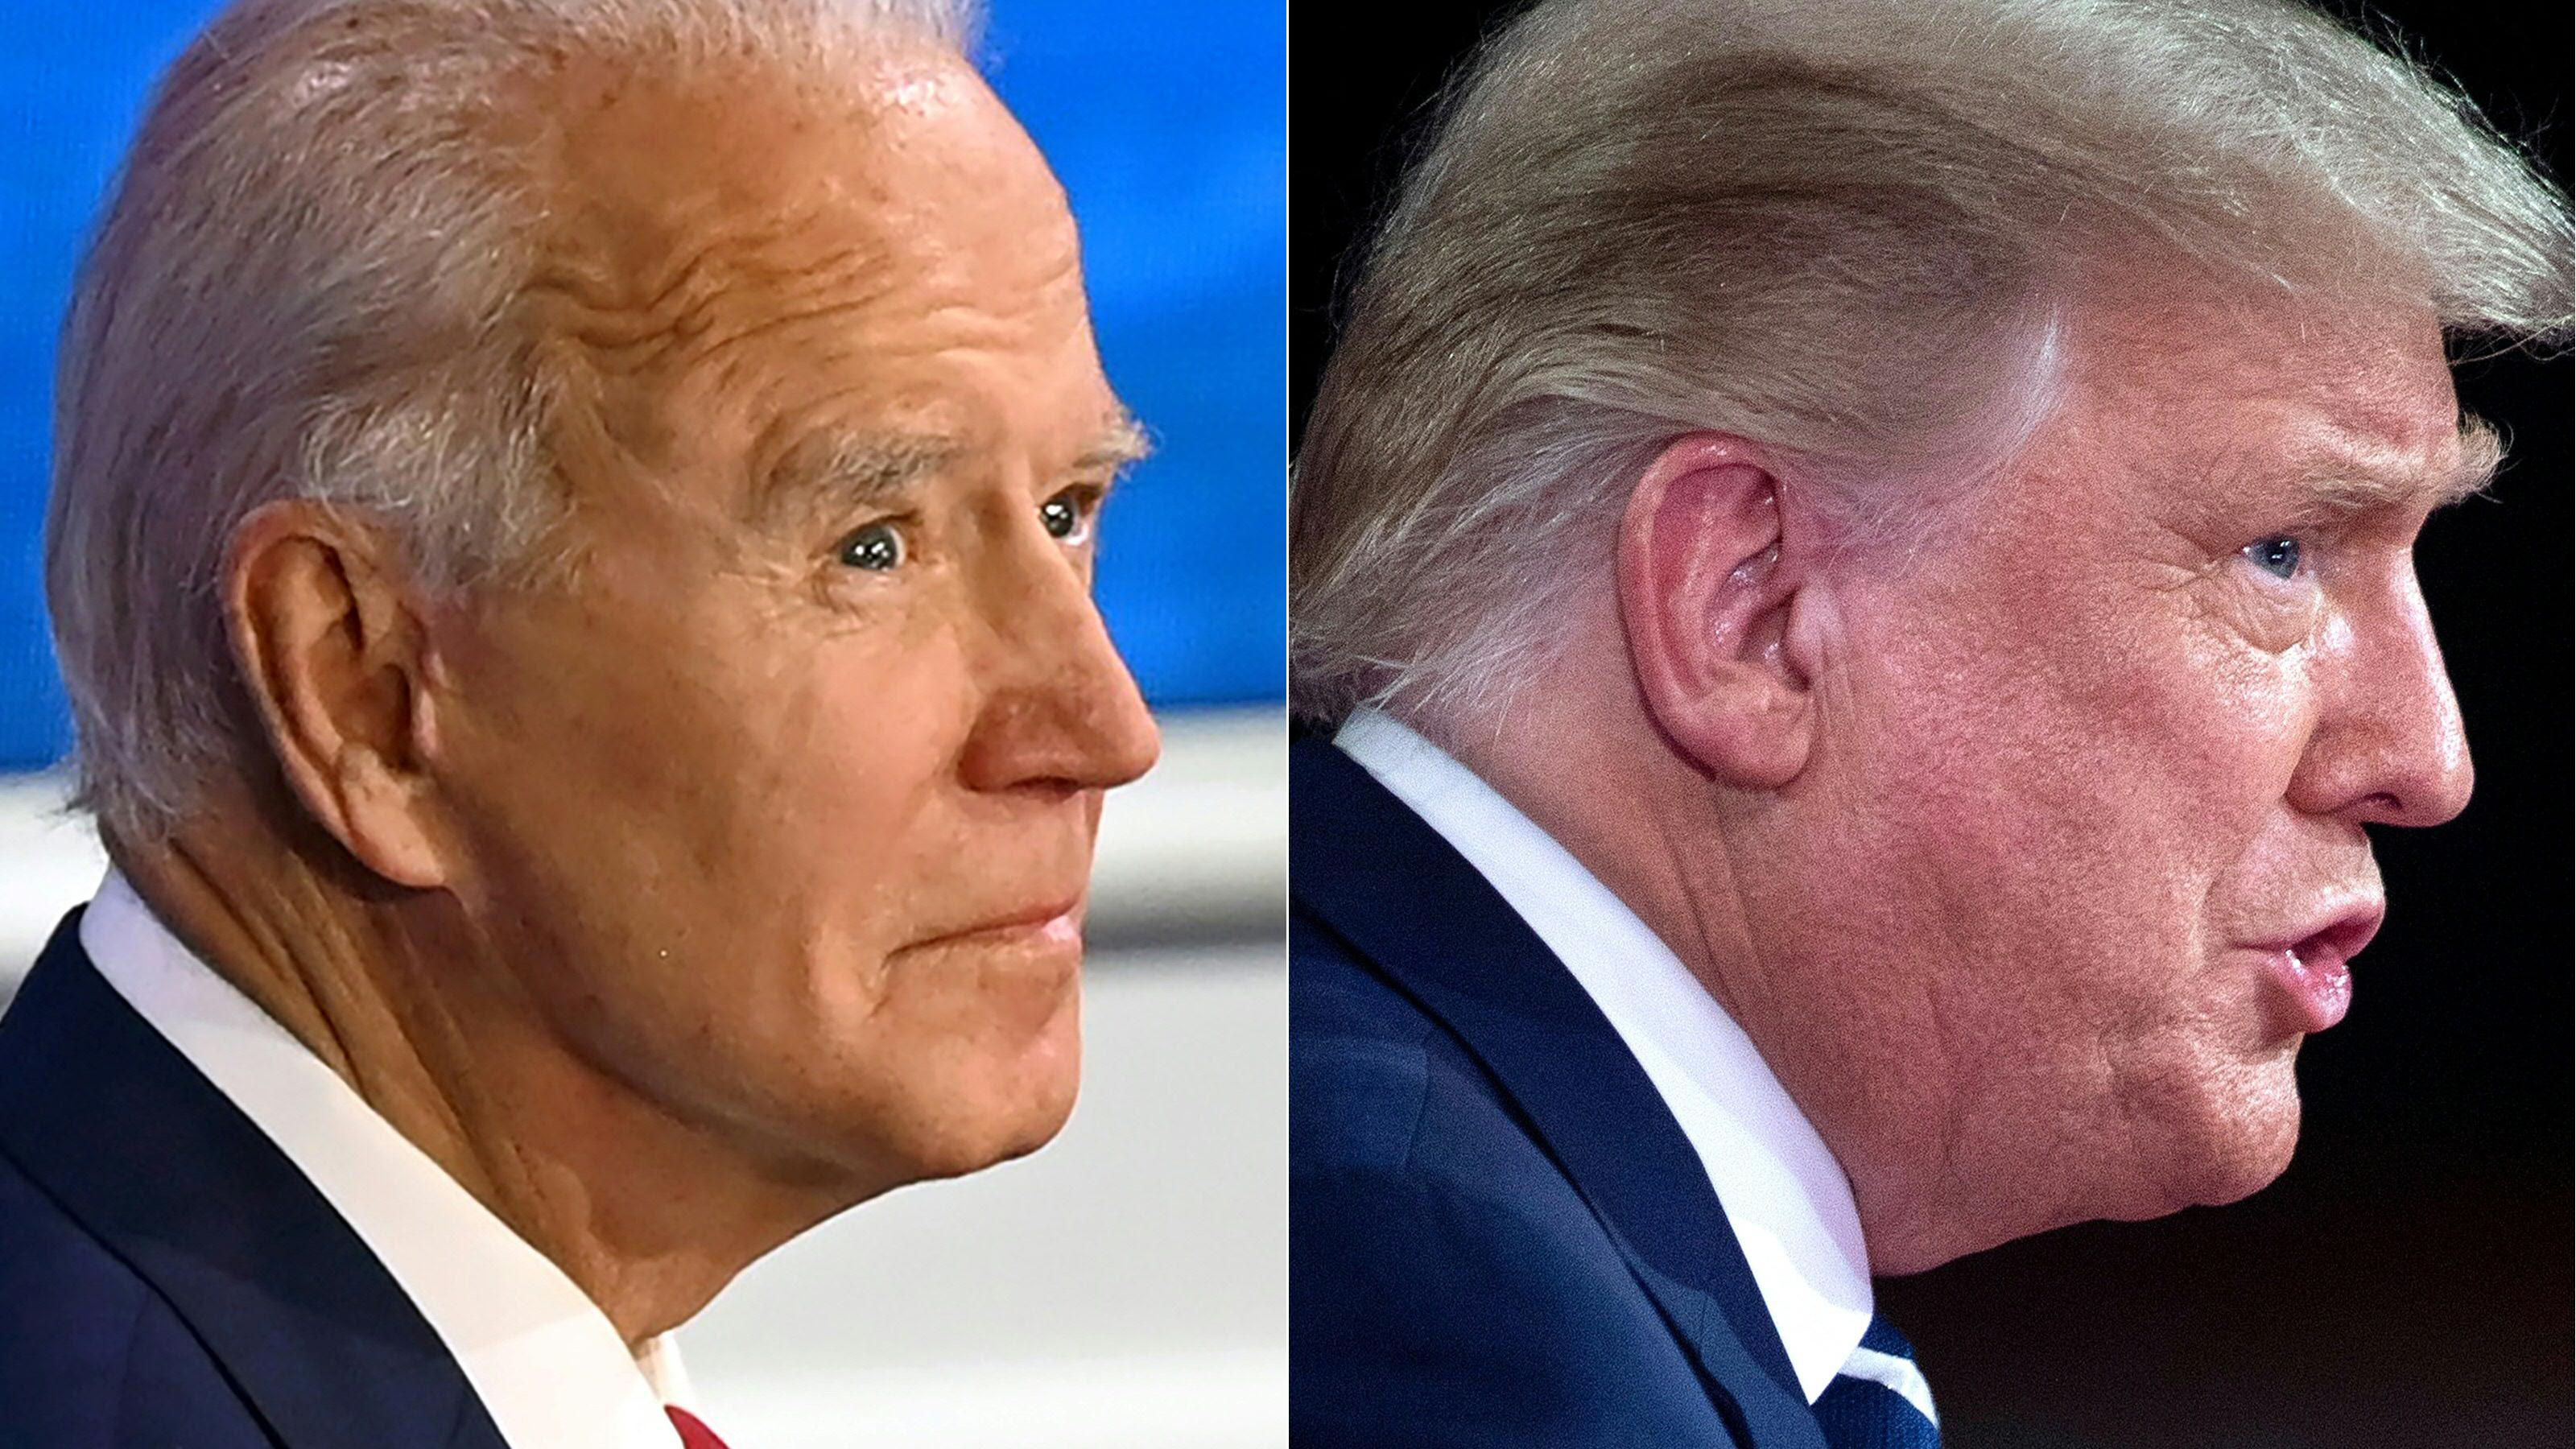 Biden Out-Raises Trump $383M to $248M in September 1